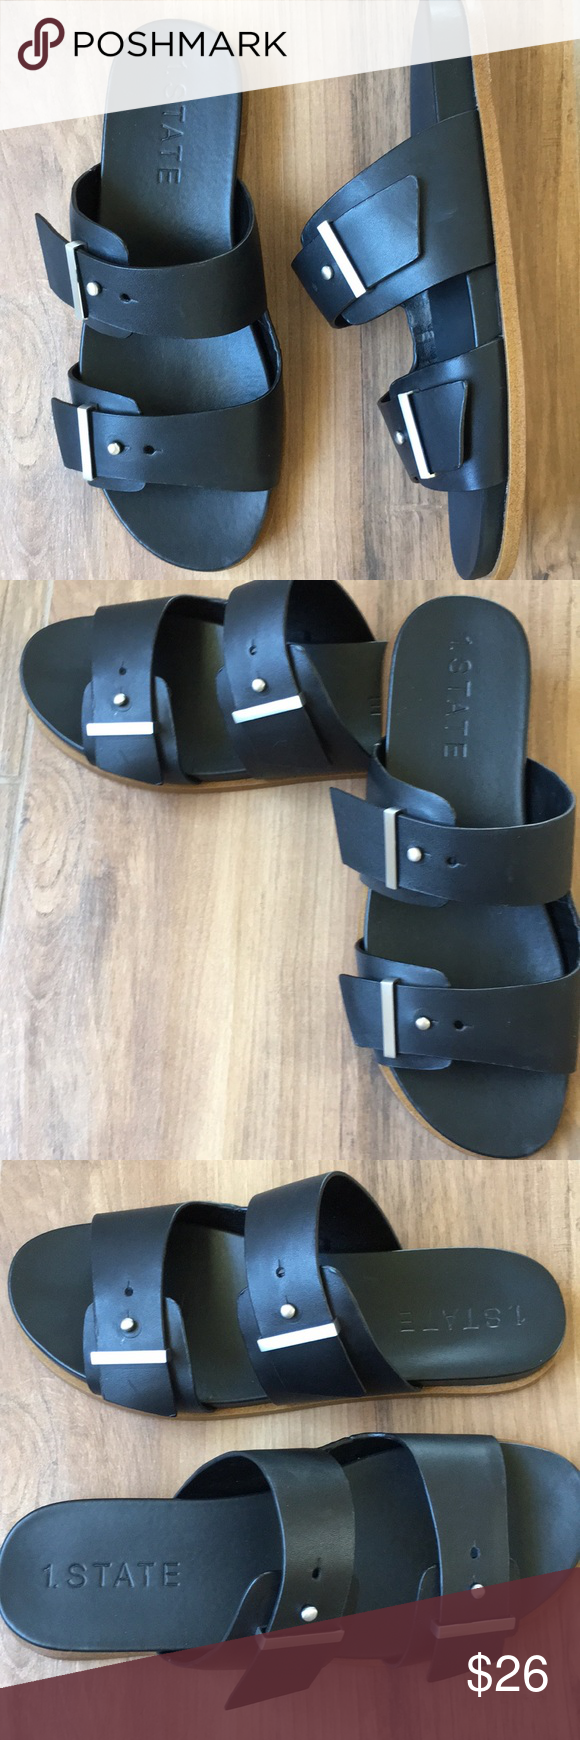 85fc4cf39e1b STATE Leather Slide Sandal 1. State Ocel Black Leather Slide Sandal Size